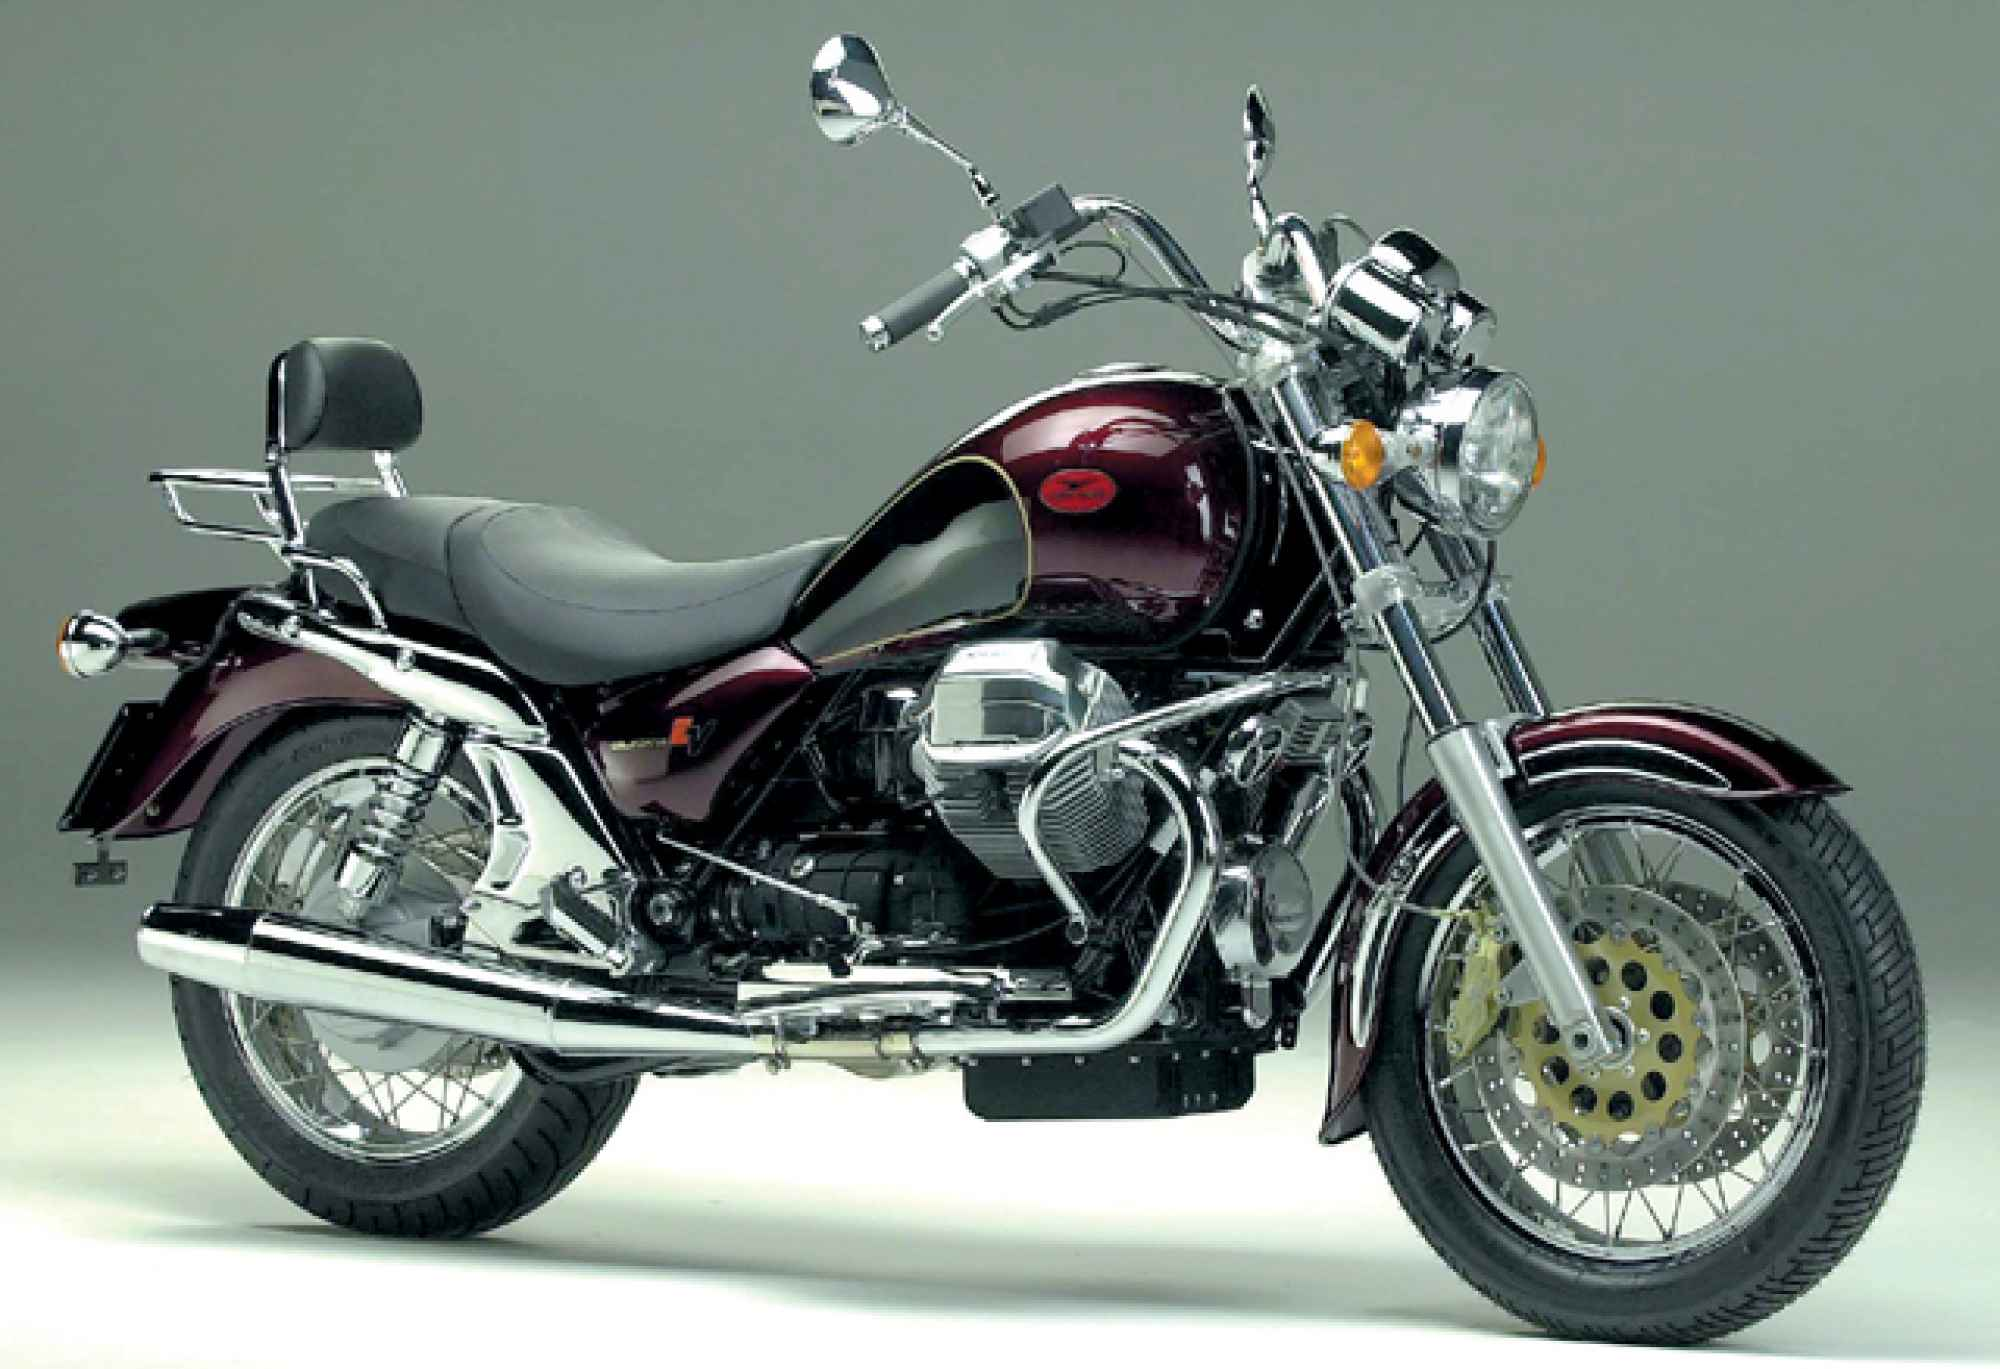 moto guzzi california 1100 ev specs 2001 2002 autoevolution. Black Bedroom Furniture Sets. Home Design Ideas